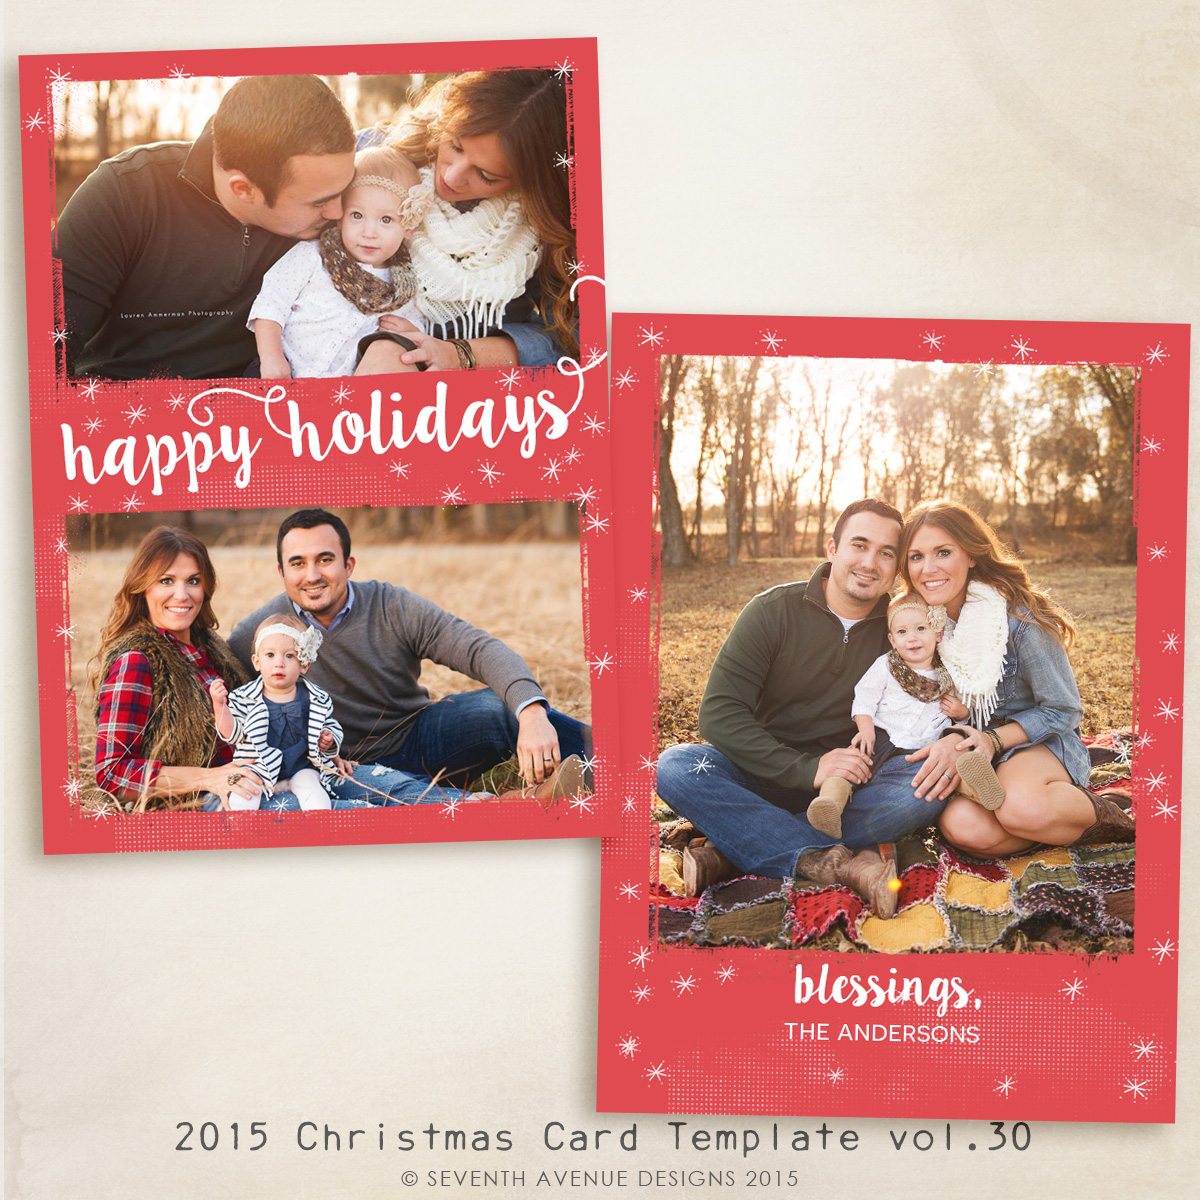 2015 Christmas Card Templates vol.30 -- 7x5 inch card template